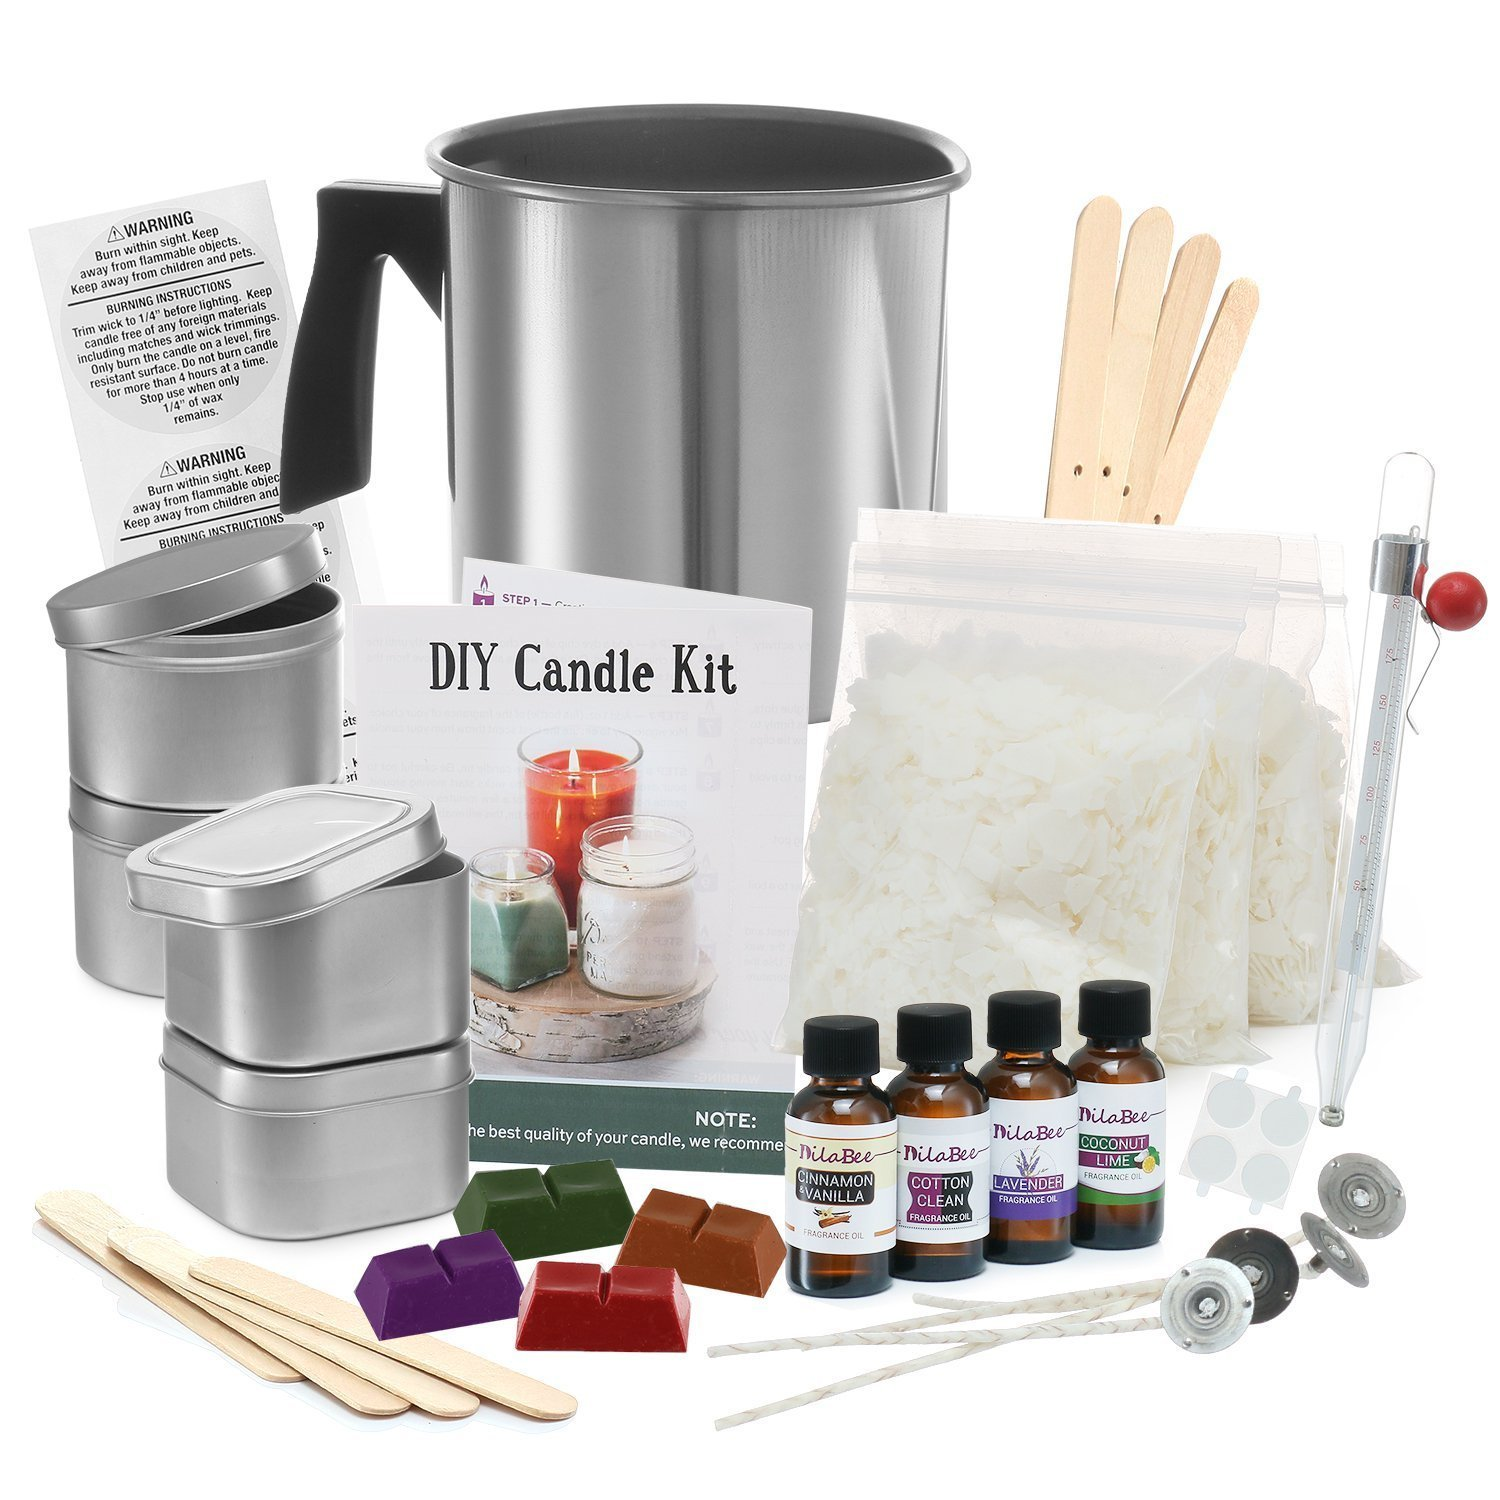 Complete DIY Candle Making Kit Supplies - Create Large ...